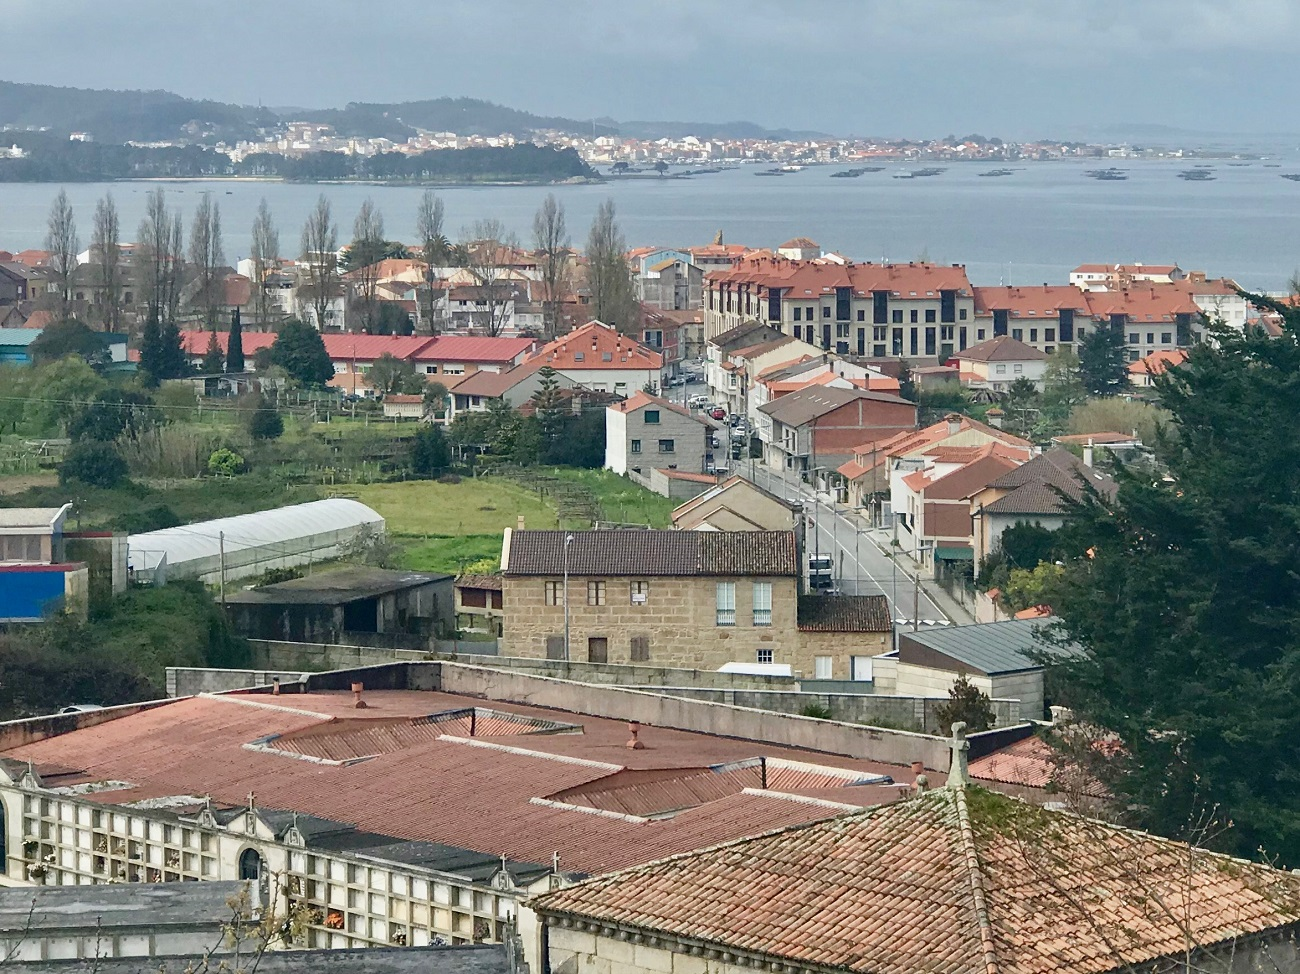 View of Cambados mussel farm barges galicia spain photo art travel